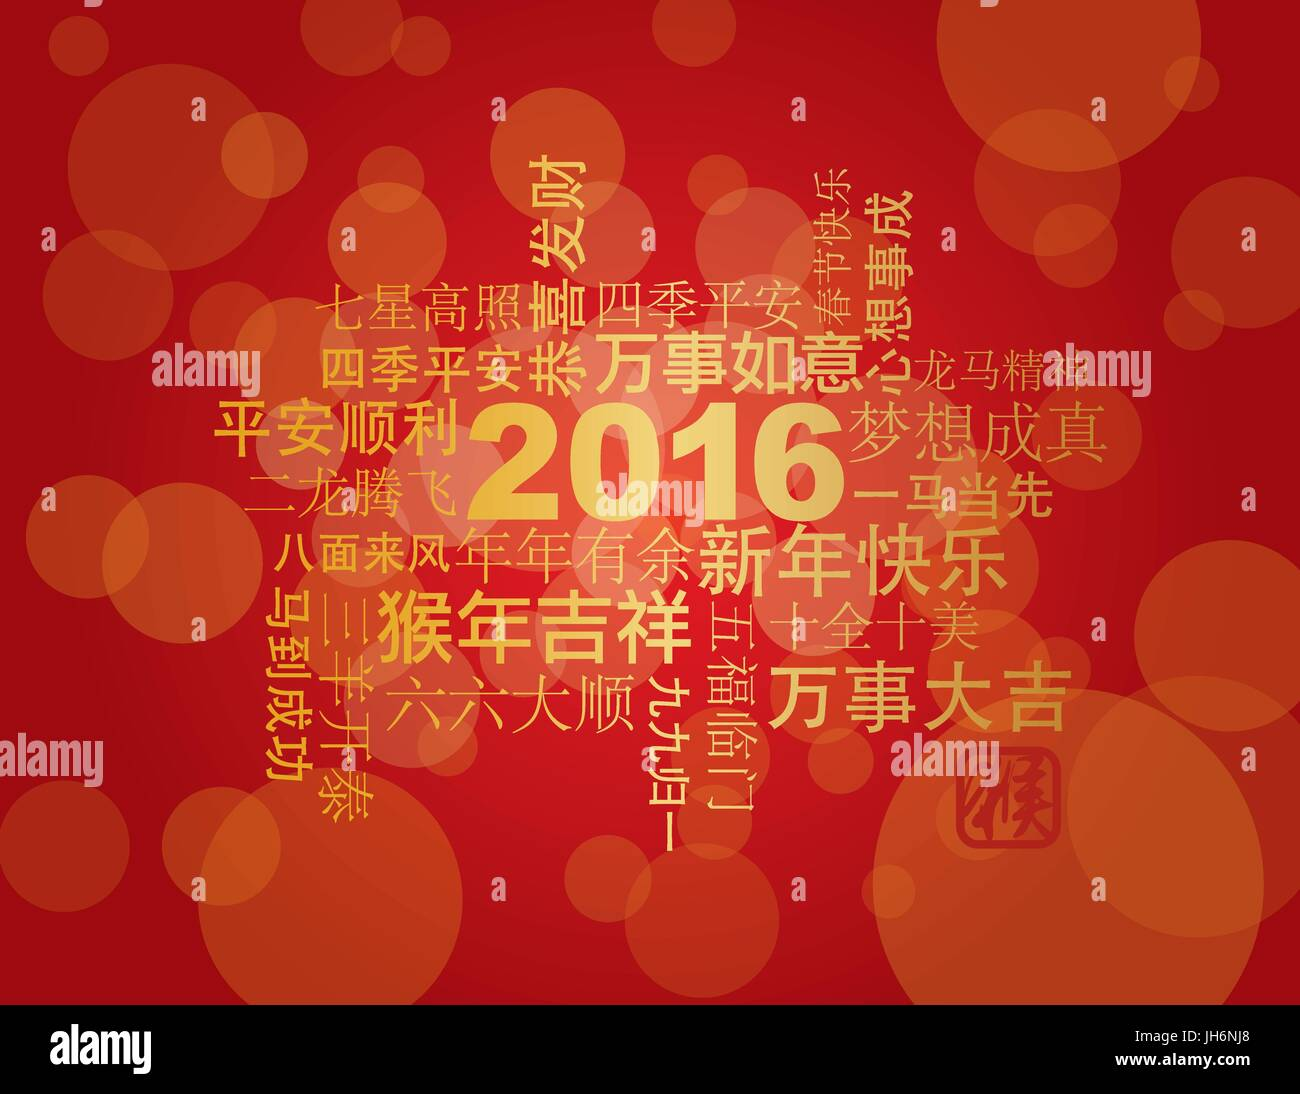 2016 chinese lunar new year greetings text wishing health good stock